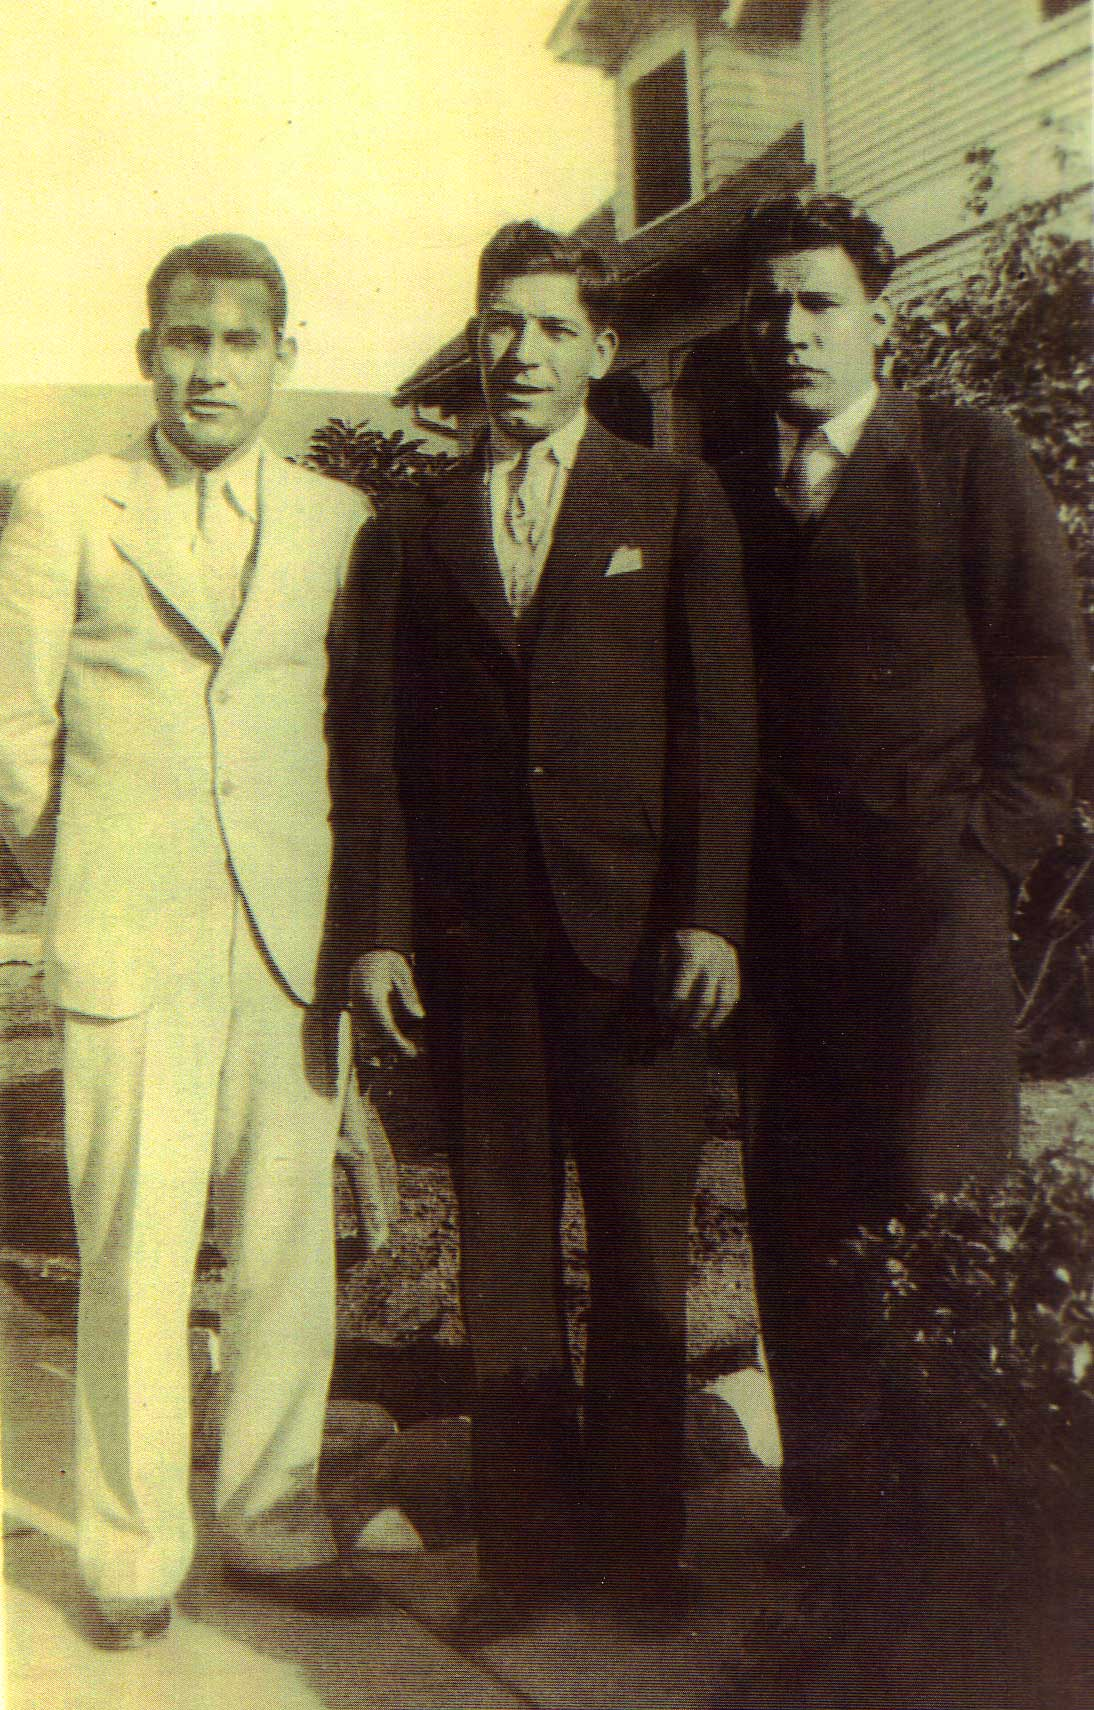 Gonzalo Luján, Peter Anthony Stoltz and Robert Paiz